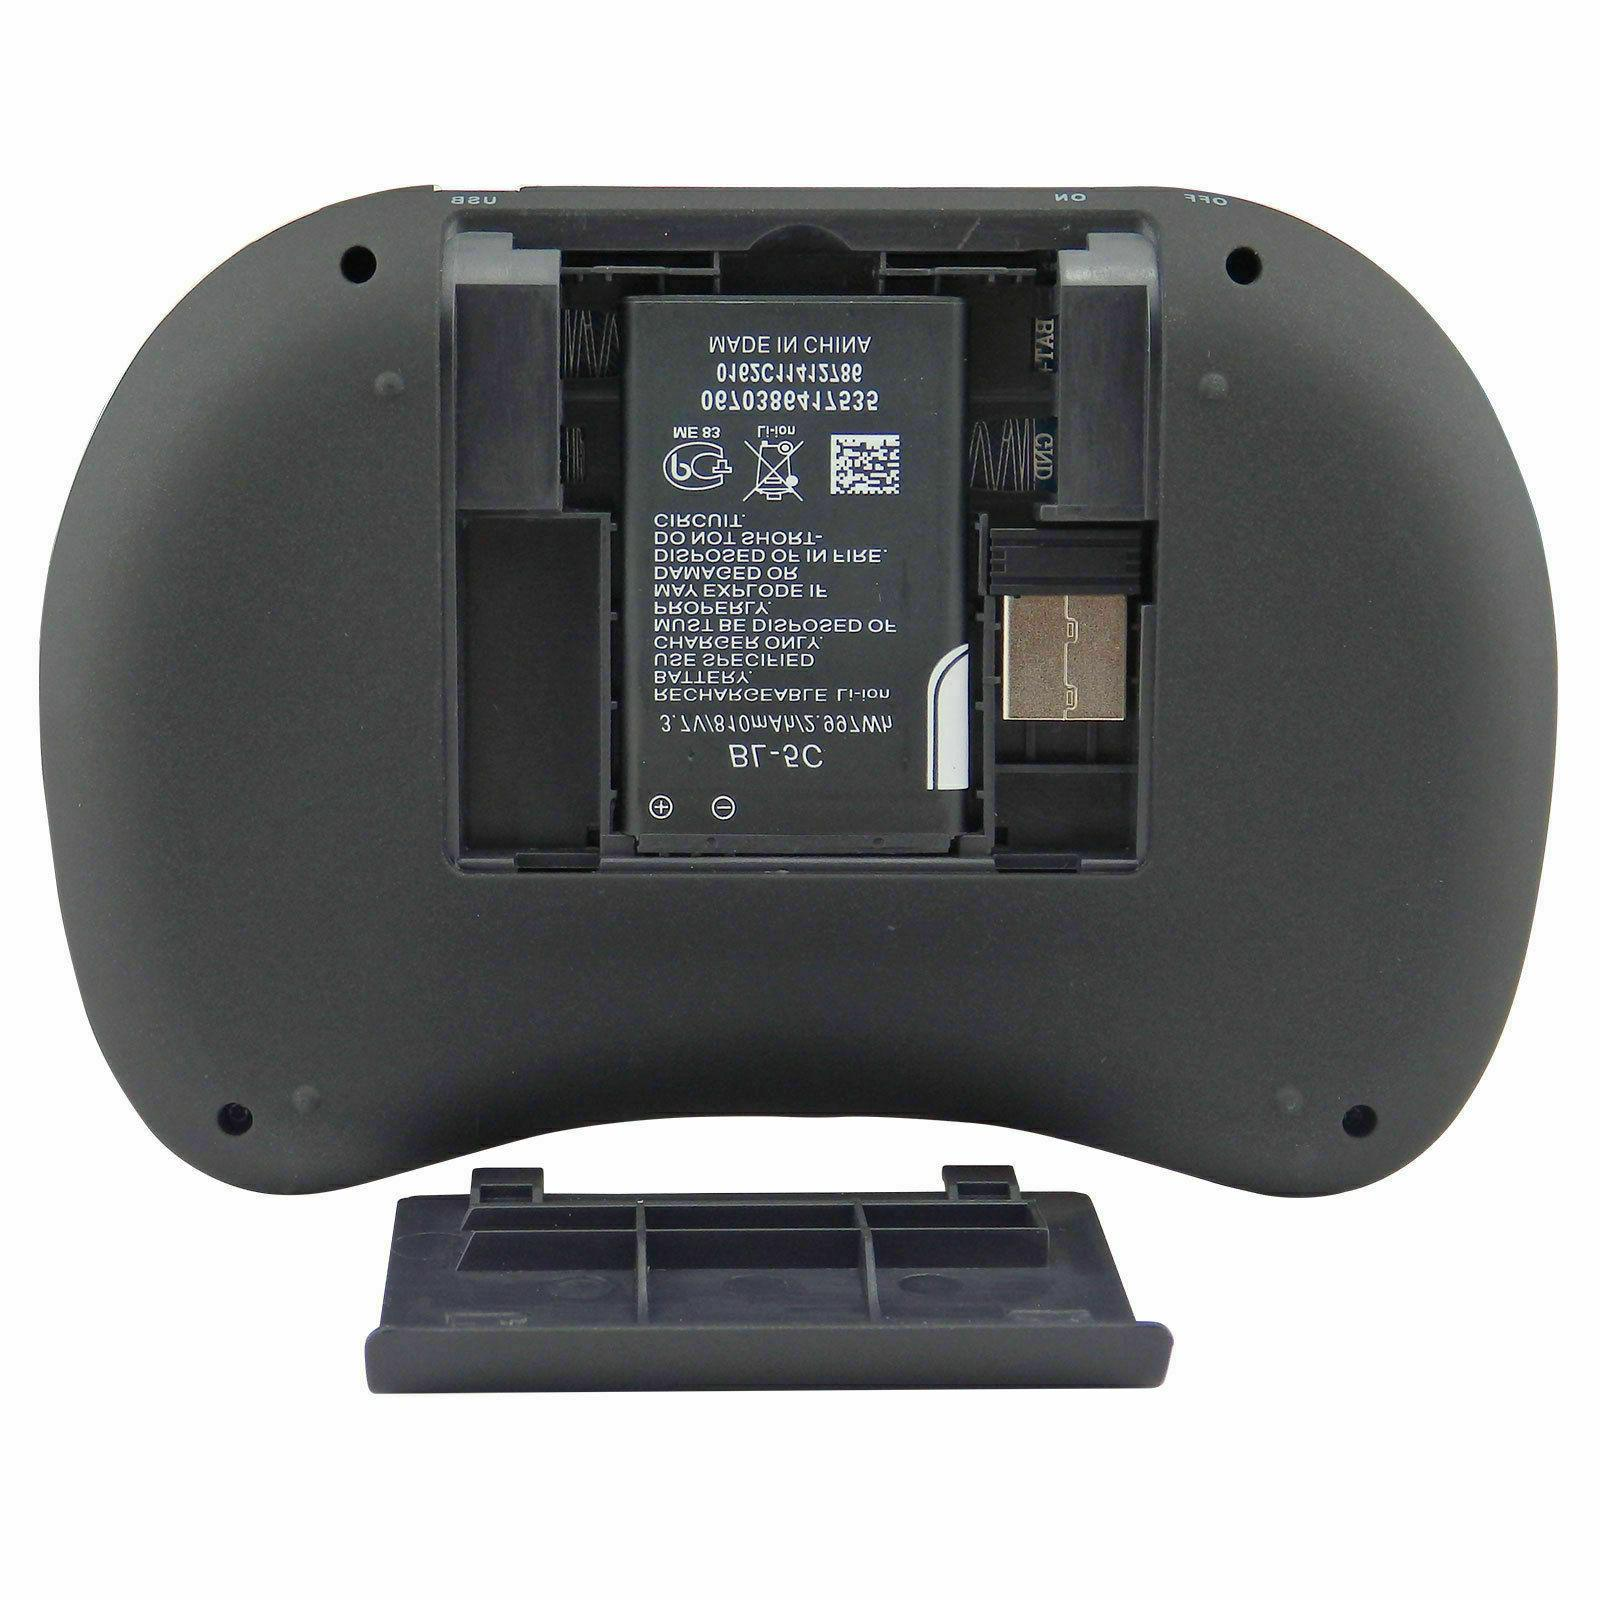 2.4GHz Wireless Keyboard Android Box